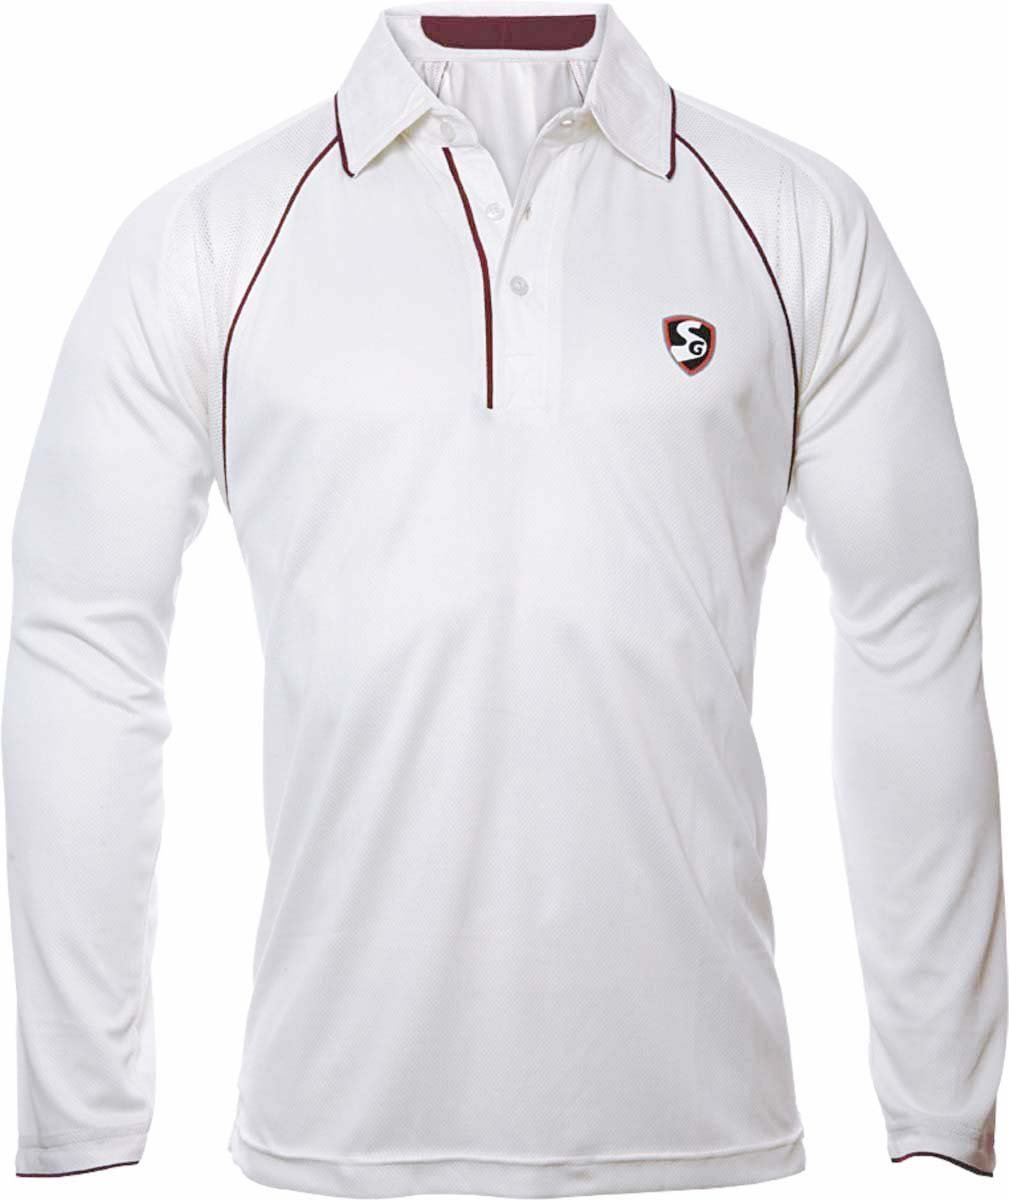 Cricket t shirt white - Buy Sg Premium Cricket T Shirt Jersey White Online At Low Prices In India Amazon In